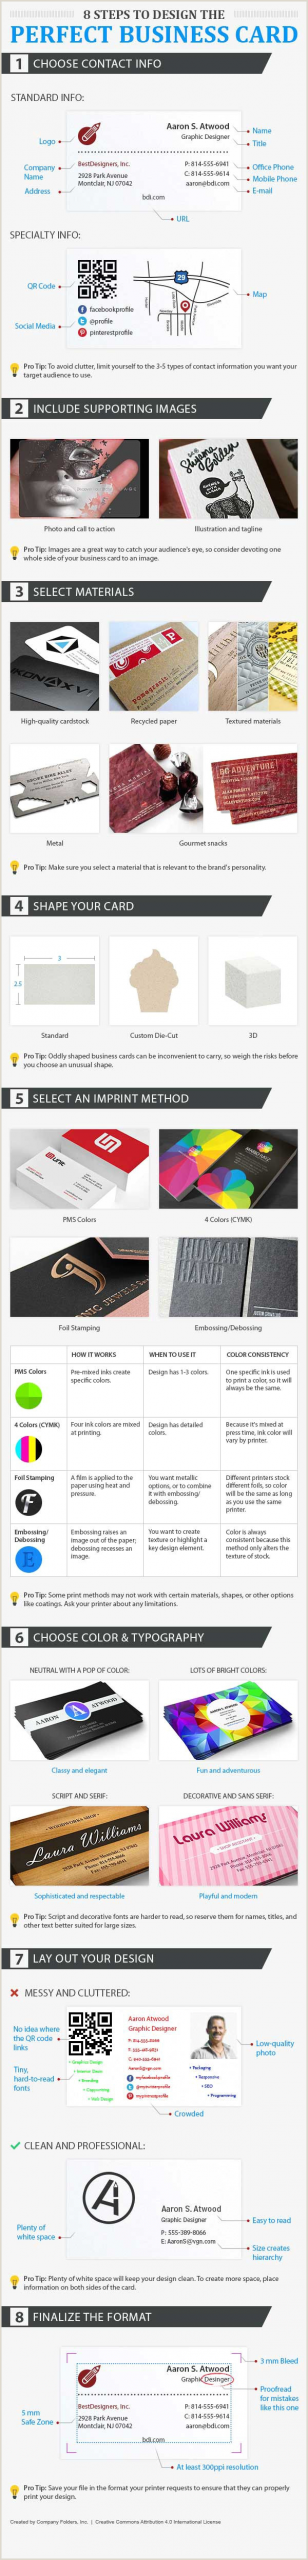 How To Make The Best Business Cards 5 Top Tips For Creating Business Card Designs